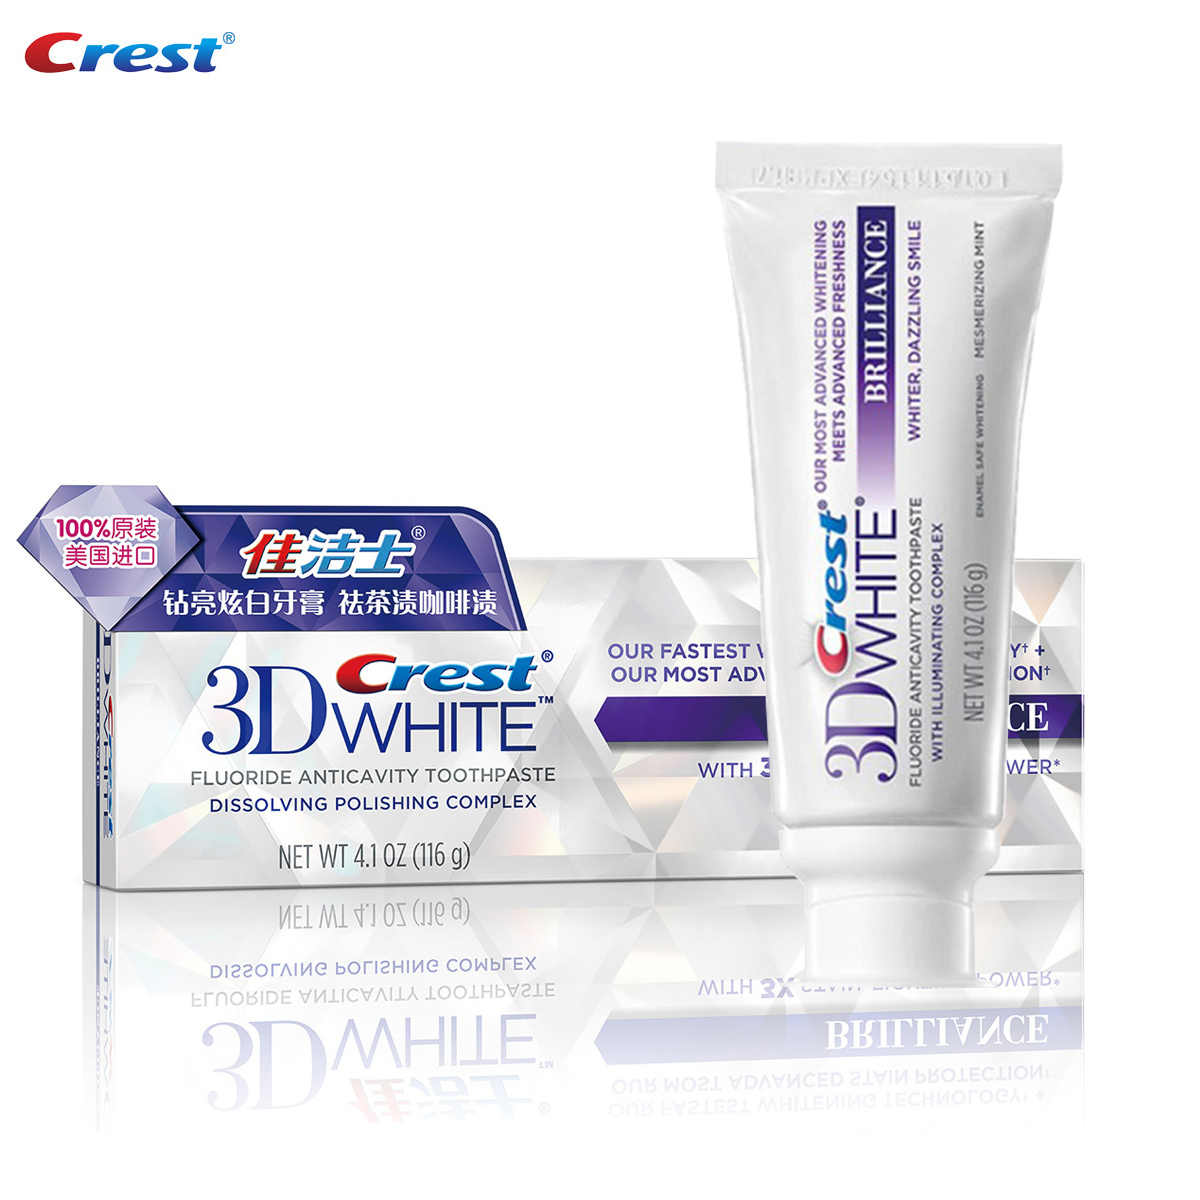 3d White Teeth Whitening Toothpaste Crest Brilliance Advanced